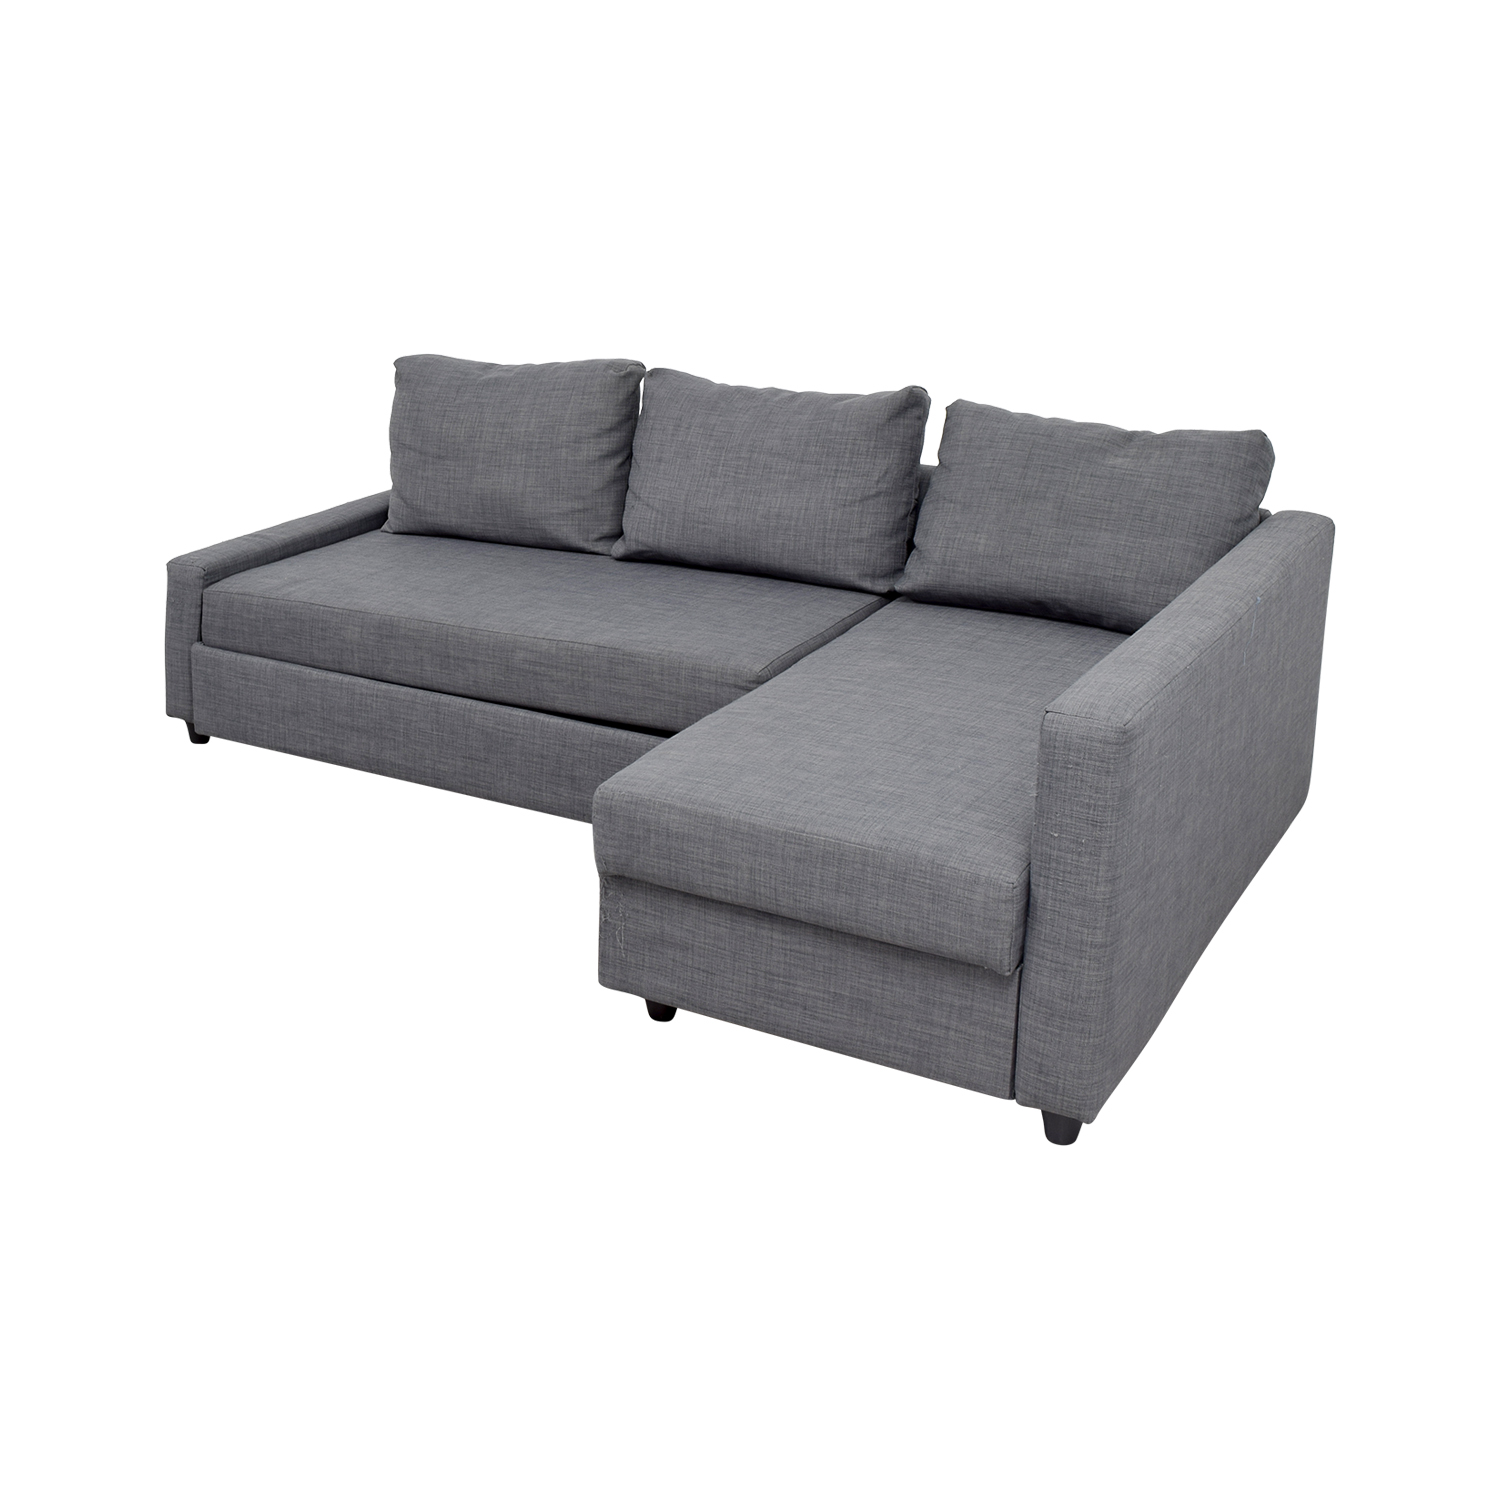 ikea sofa sleeper sectional with air coil mattress 41 off grey chaise sofas